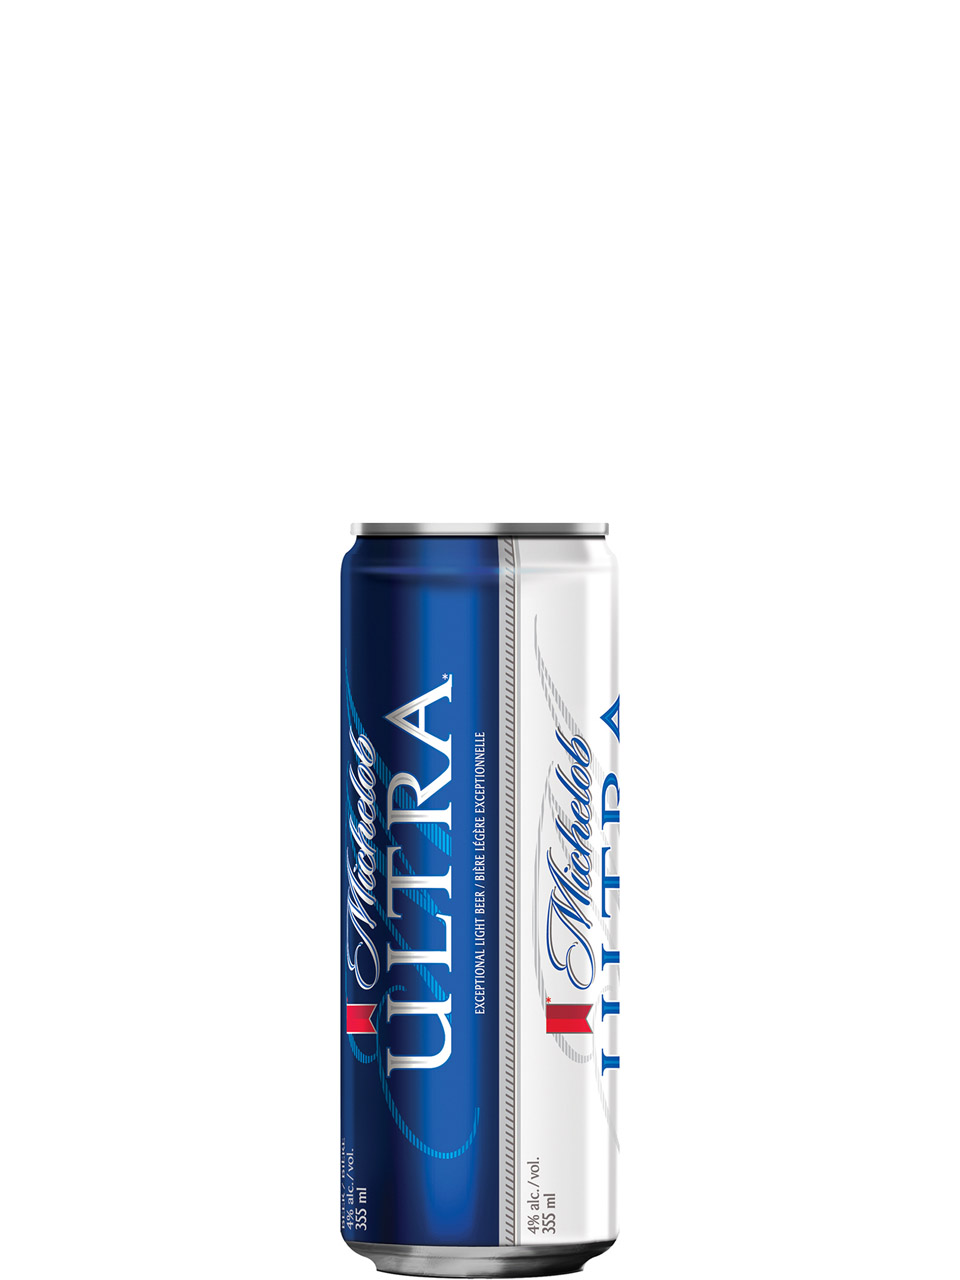 Michelob Ultra 12pk Cans